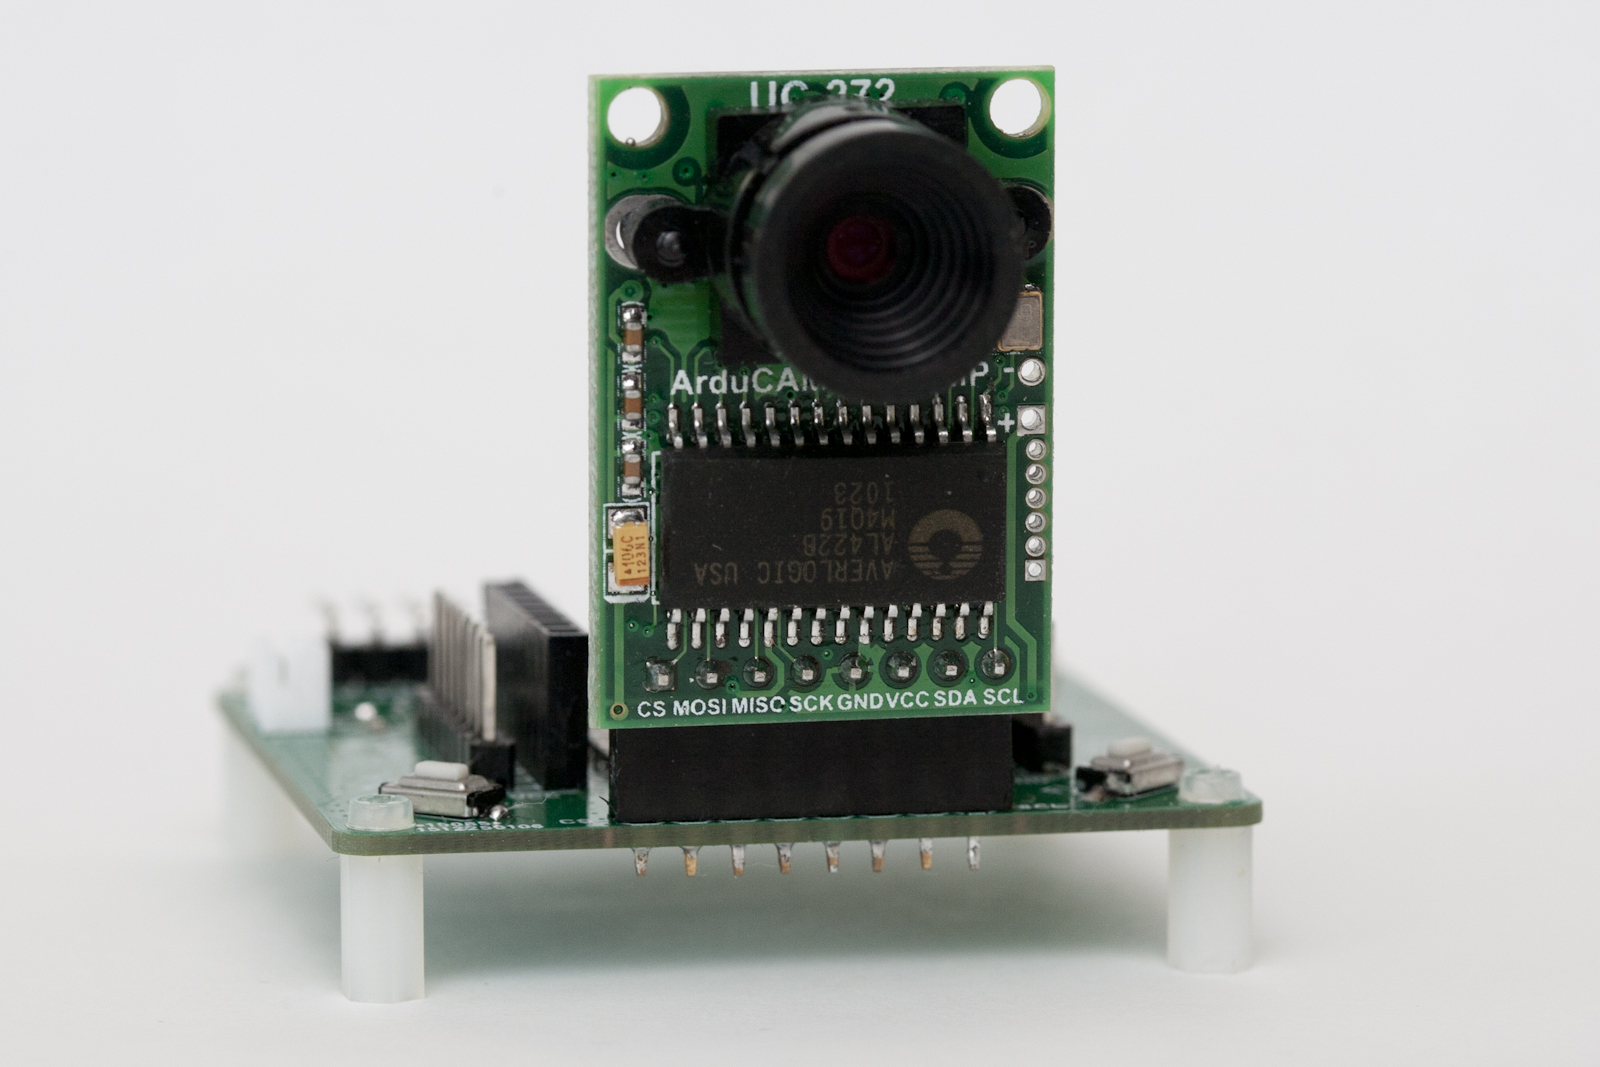 Building A Low Cost Wifi Camera Johan Kanflo Backup Battery For Your Arduino Just Takes Little Bit Of Lastly Note About The Lens It Uses Mount Called M12xp05 And There Are Plenty Lenses To Choose Between One Included With Arducam Mini